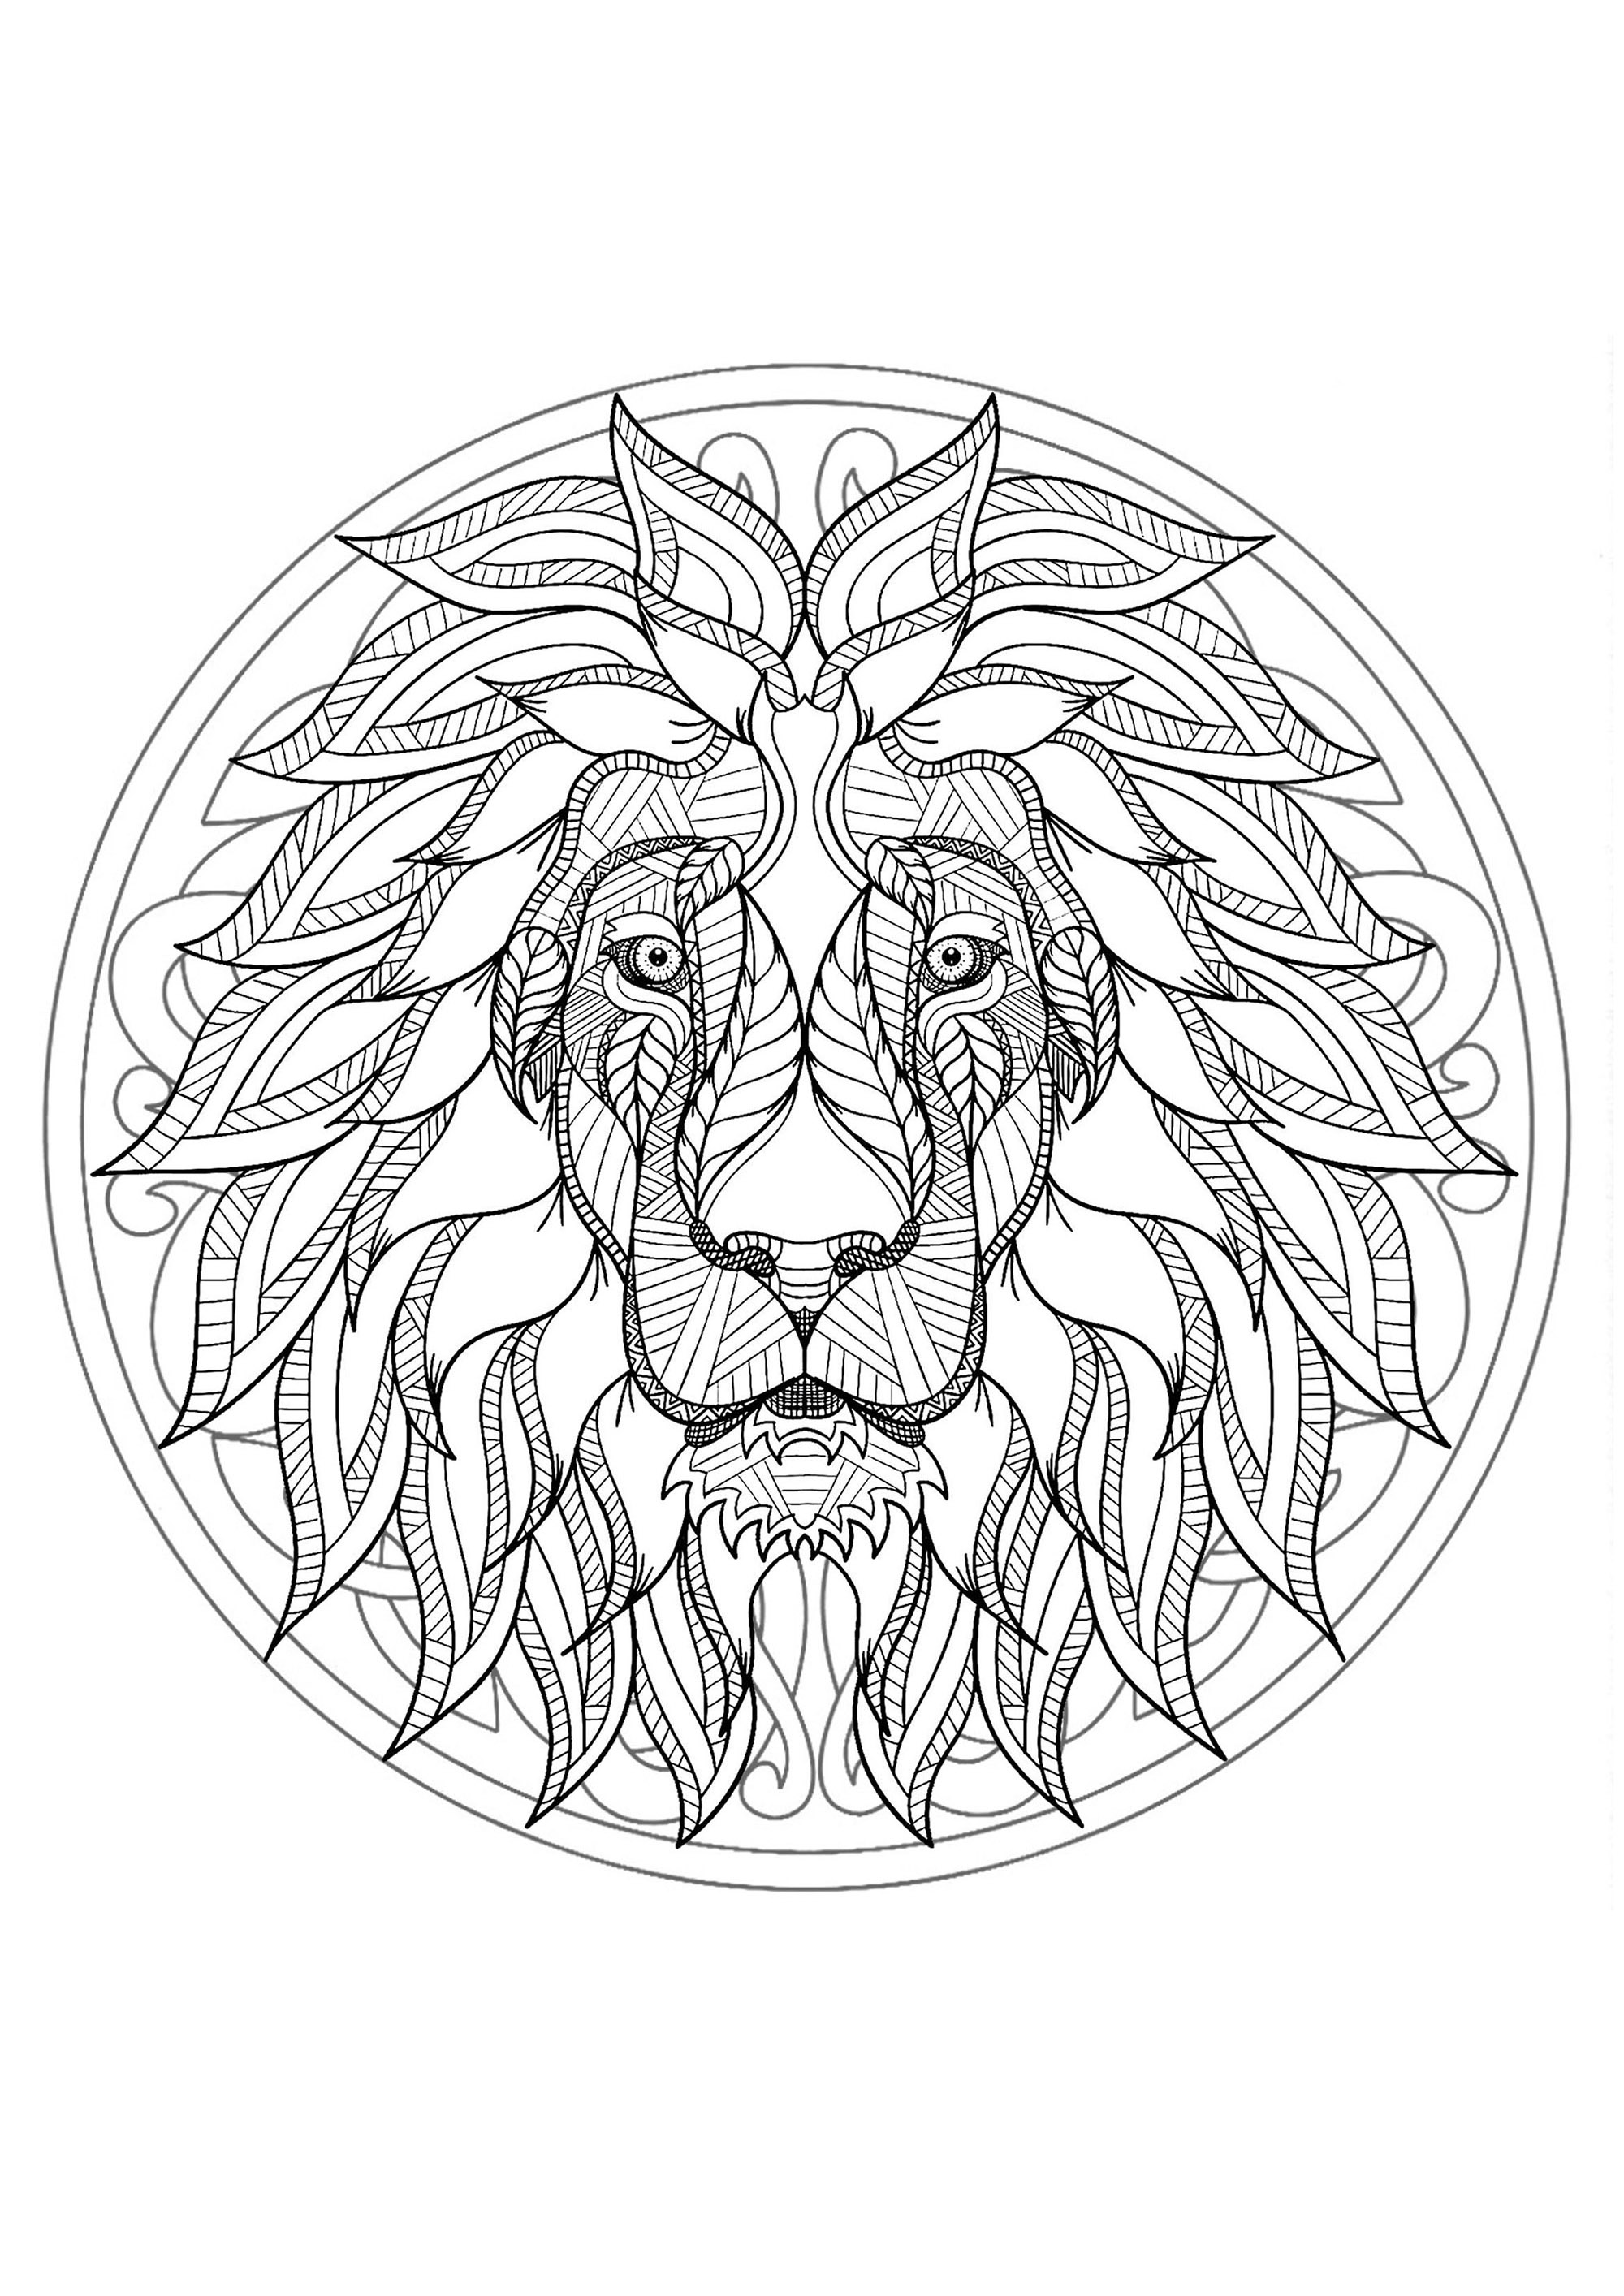 Mandala lion head 1 difficult mandalas for adults for Lion mandala coloring pages